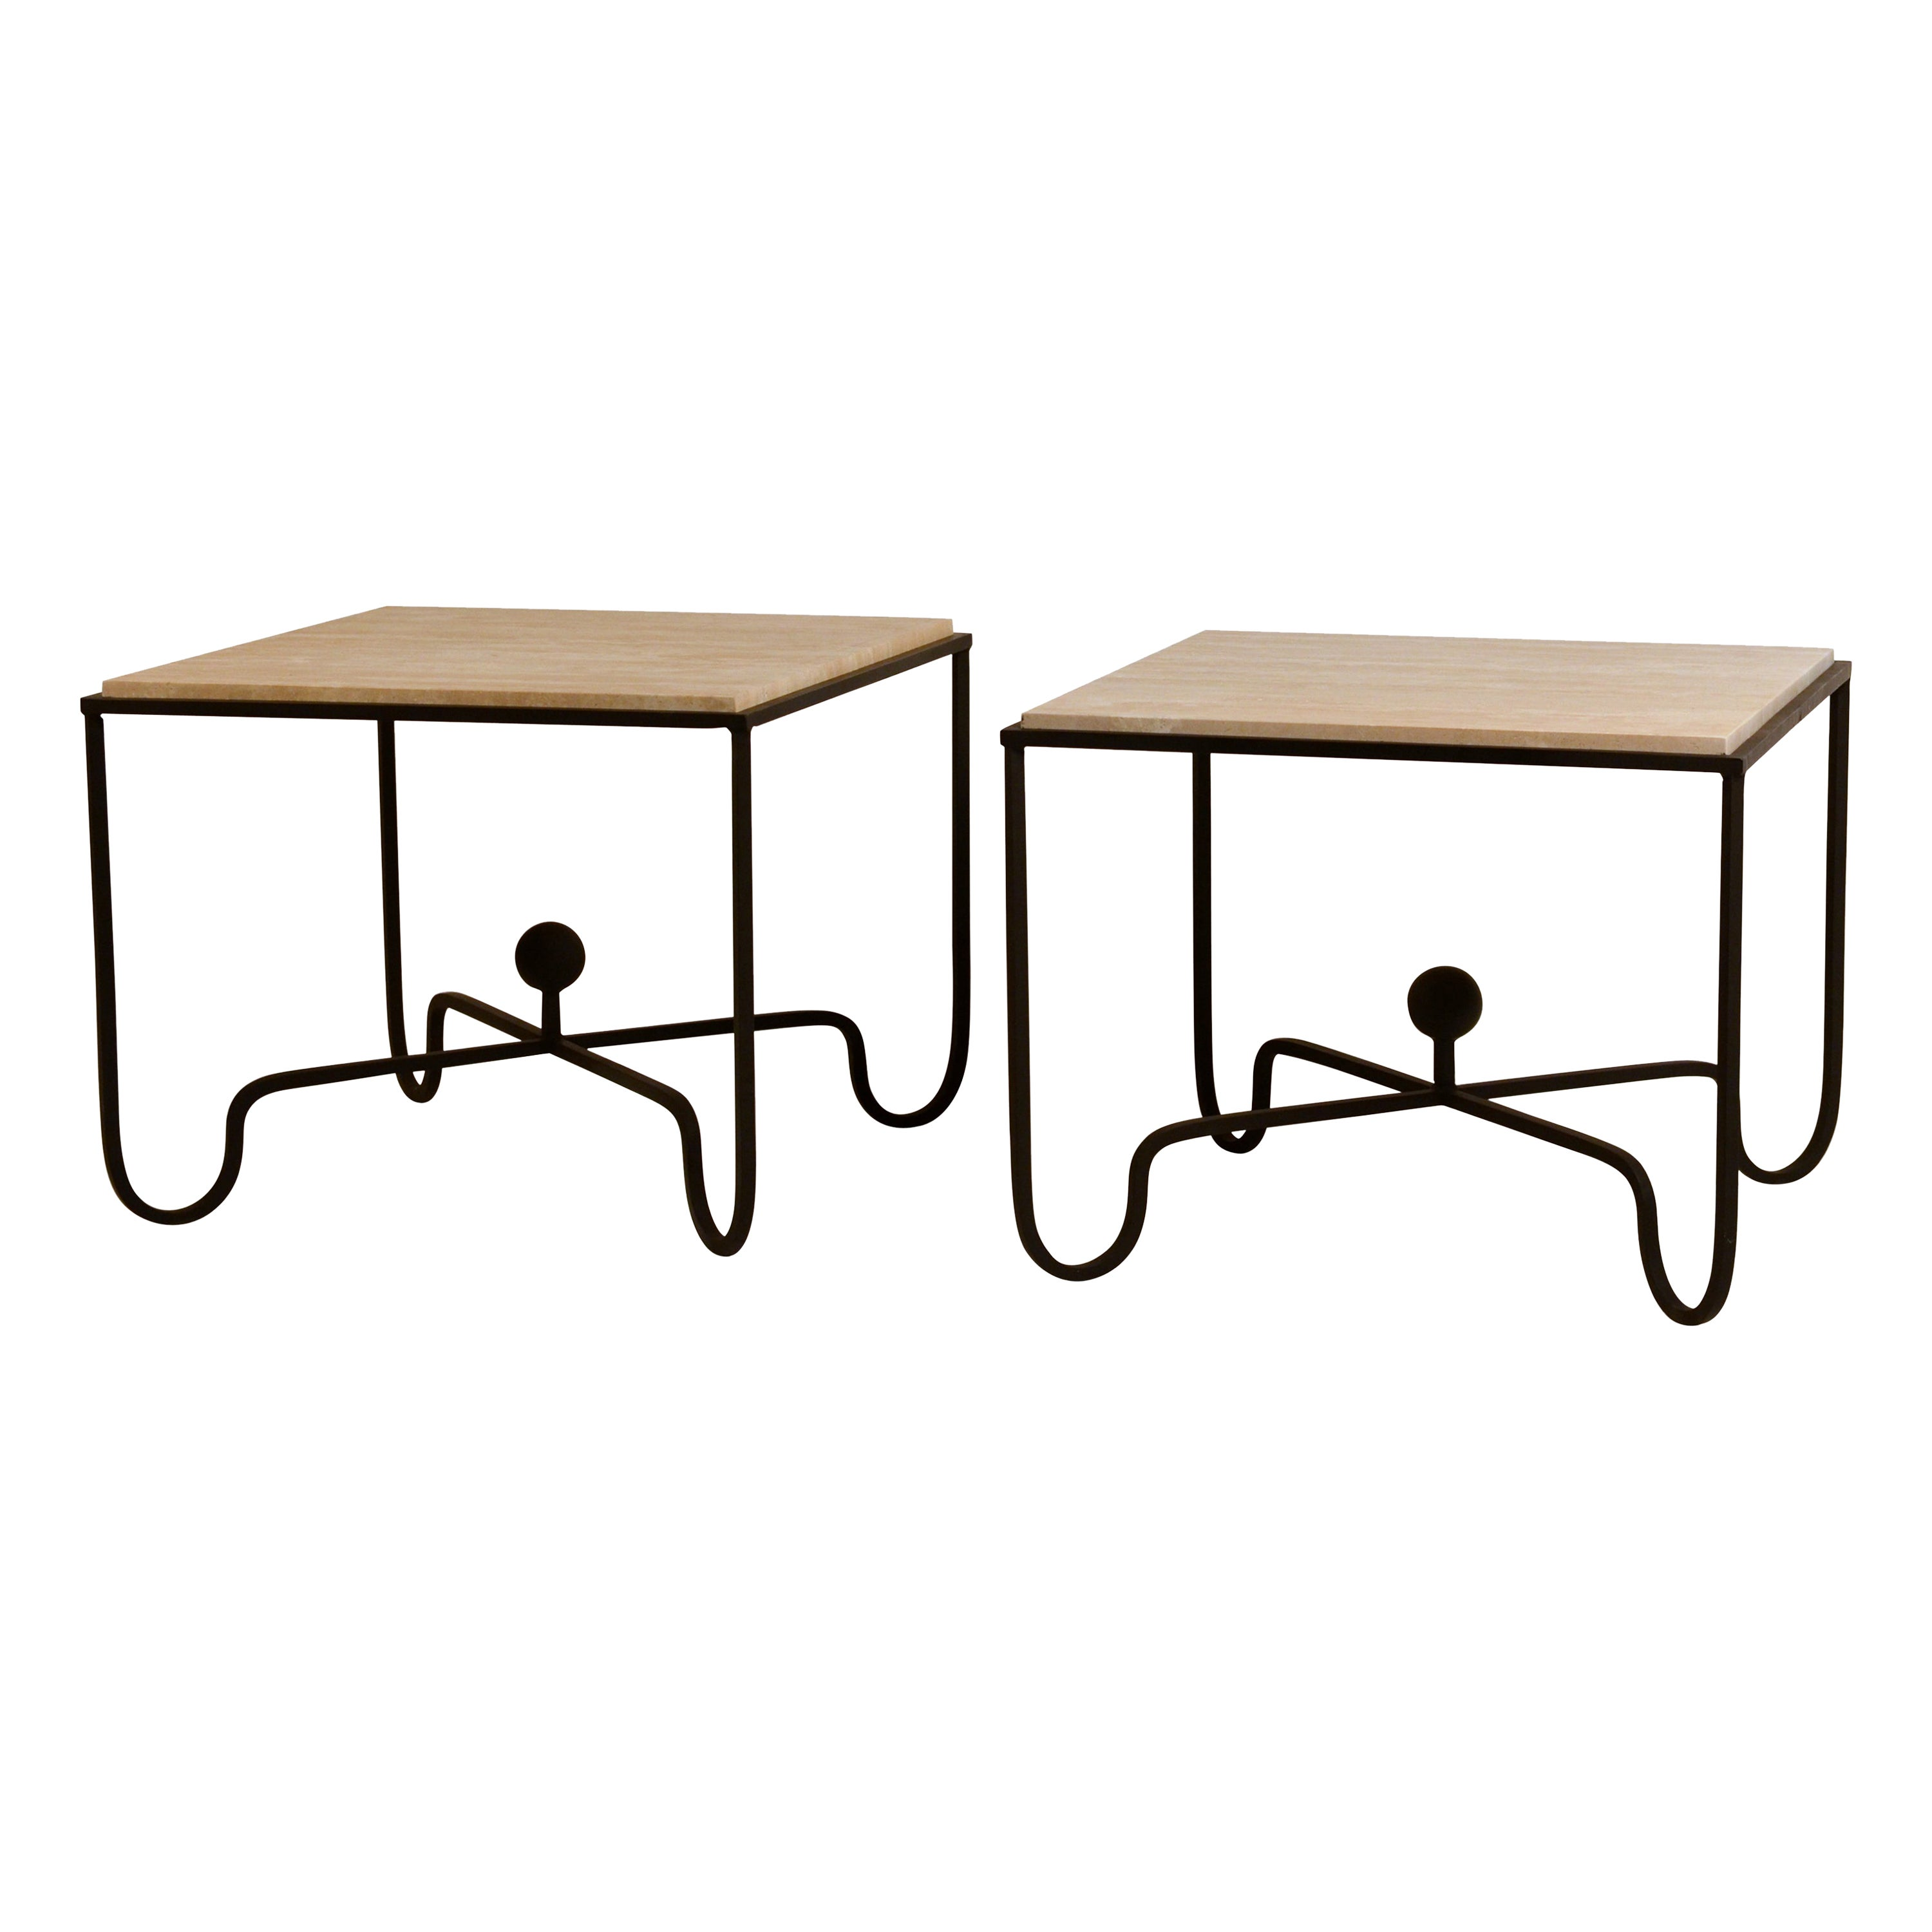 Pair of Large 'Entretoise' Cream Travertine Side Tables by Design Freres